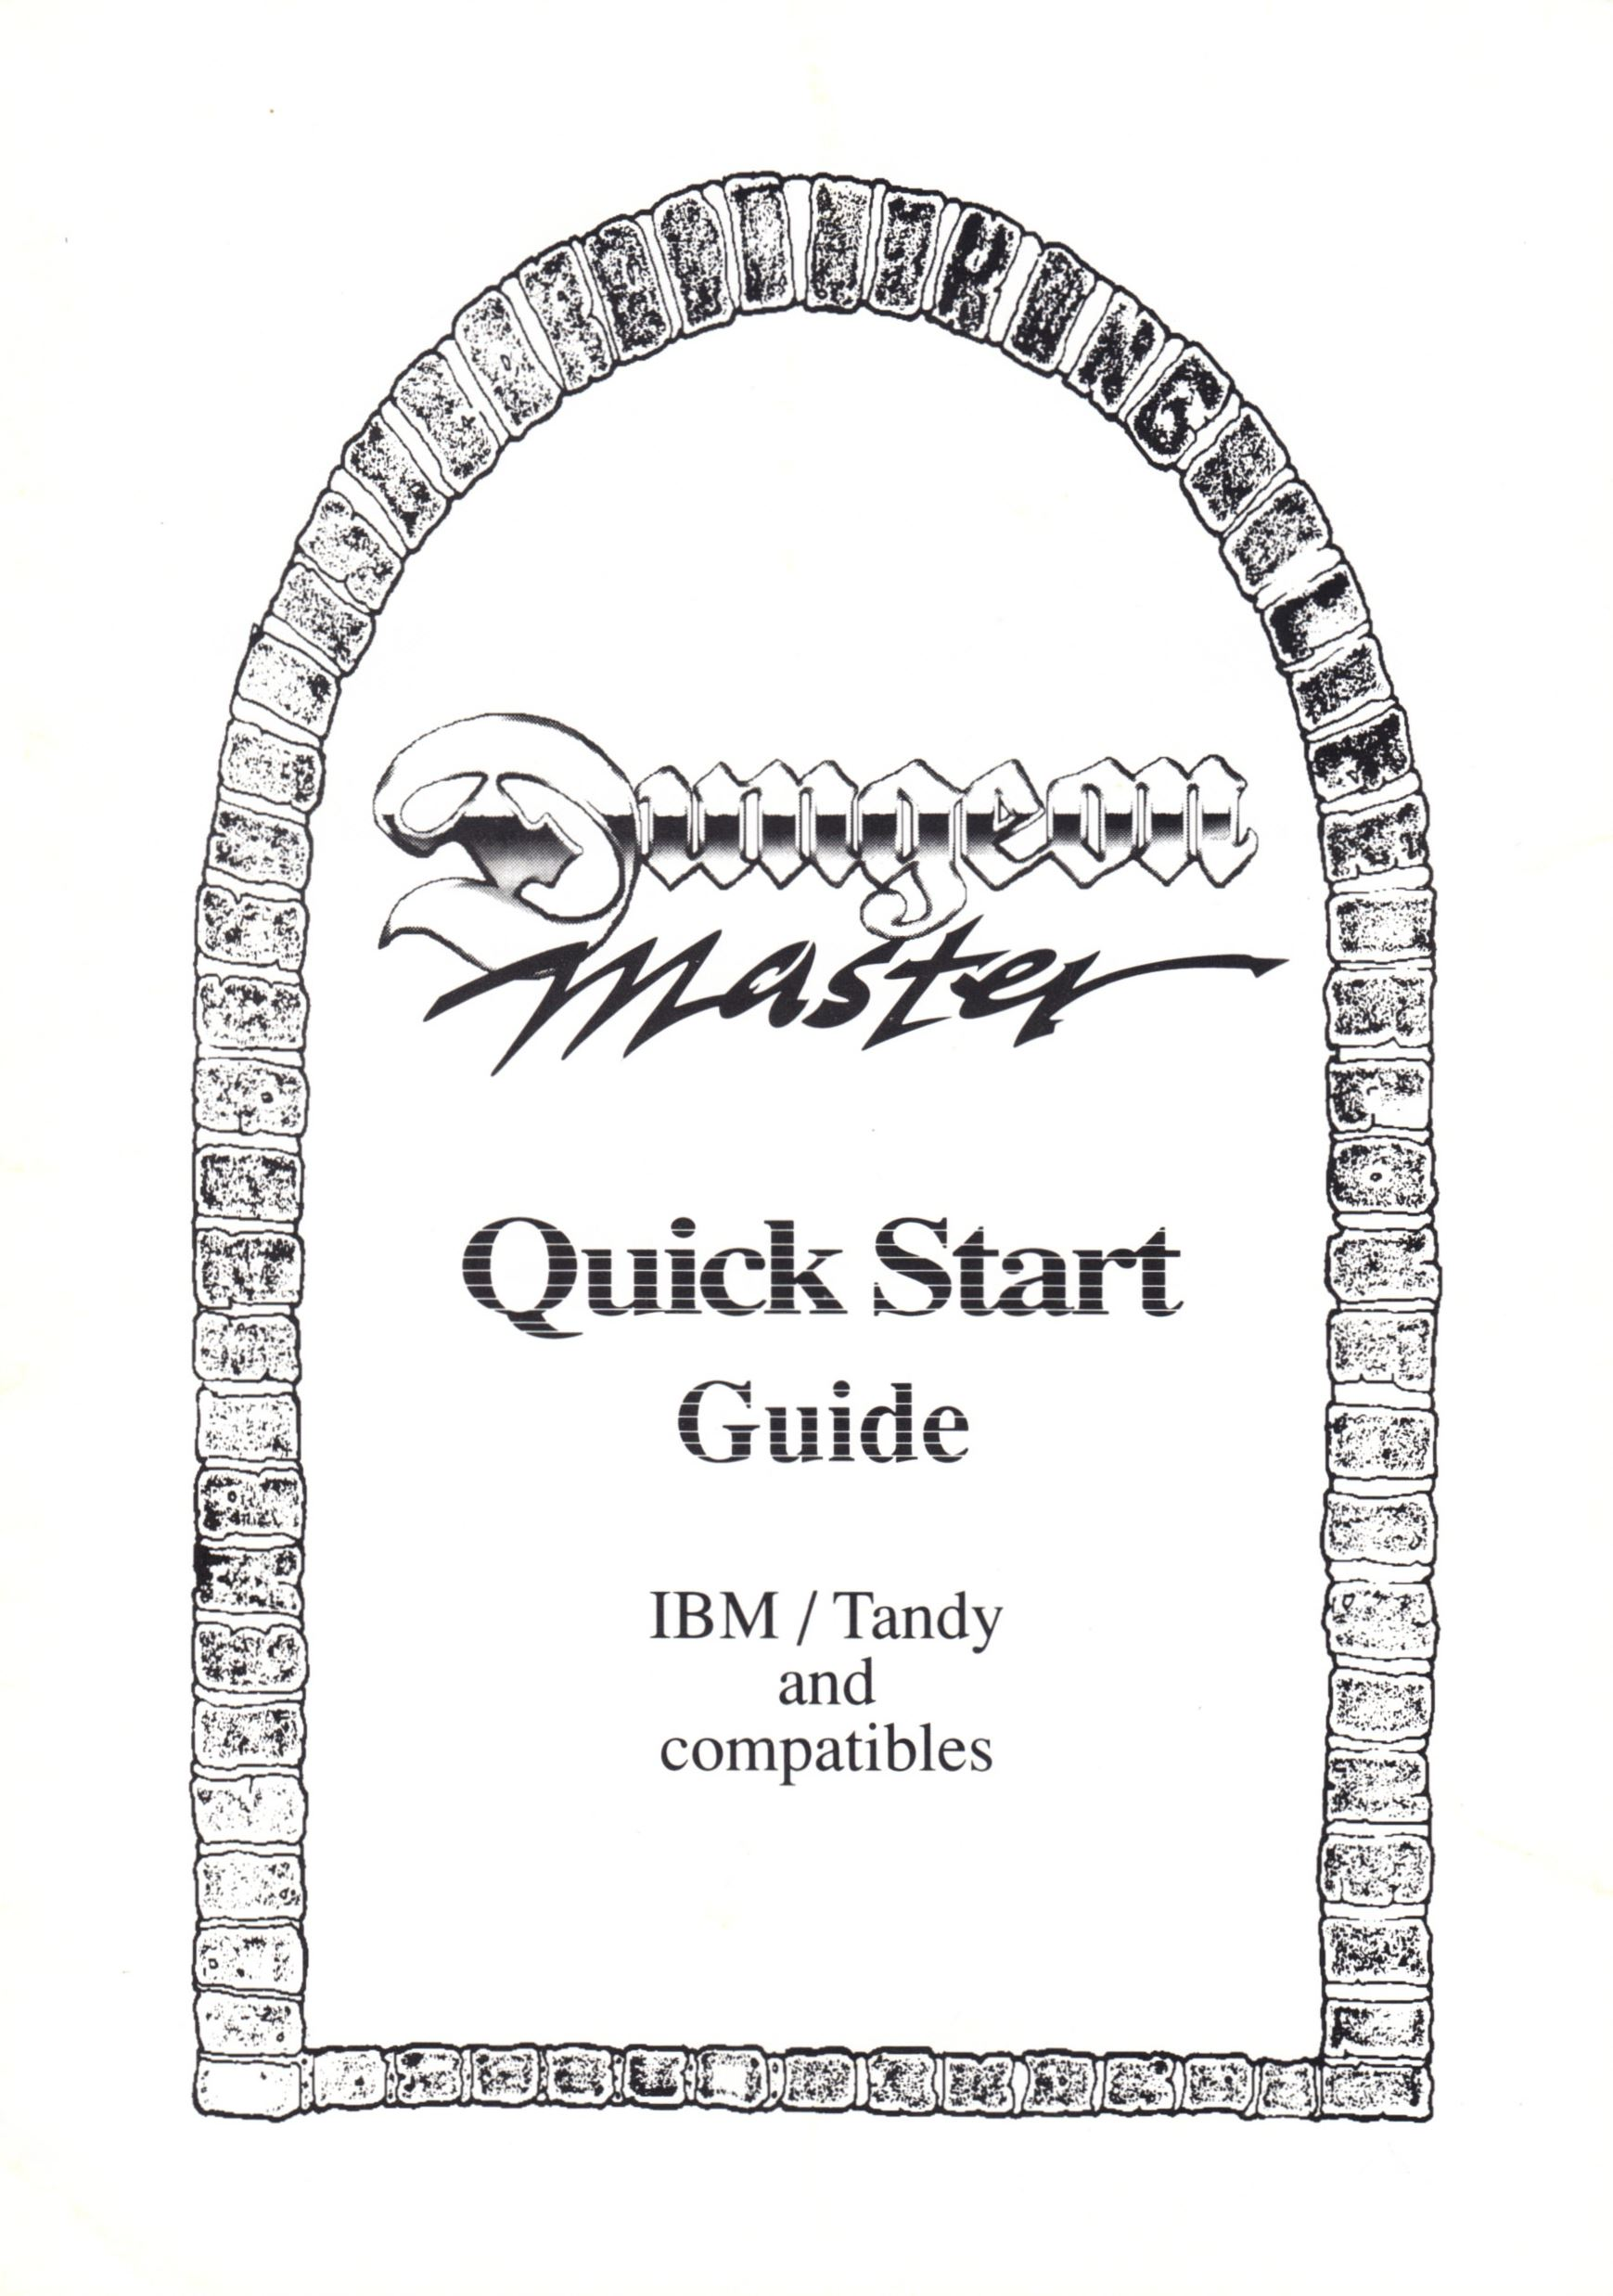 Game - Dungeon Master - UK - PC - Psygnosis - Quick Start Guide - Page 001 - Scan